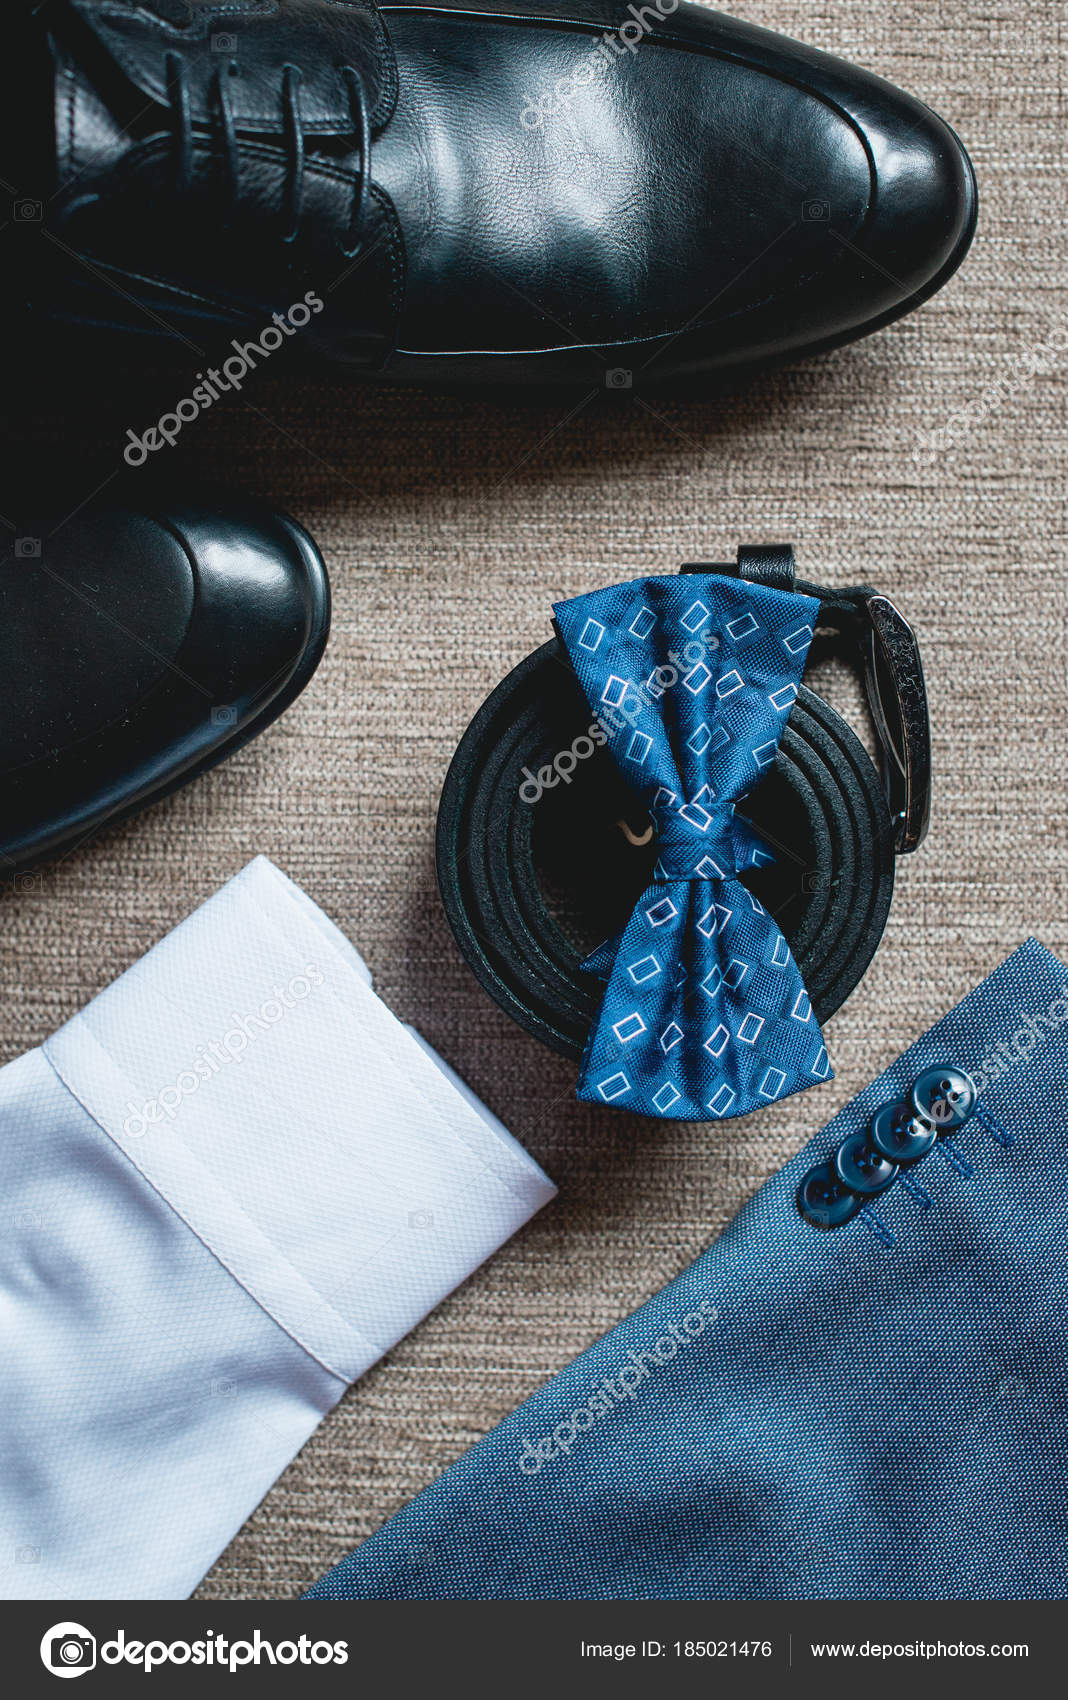 d4e28192c0c0 Suit, blue bow tie, leather black shoes and belt. Grooms wedding morning.  Close up of modern man accessories. Look from above — Photo by Ashtray25